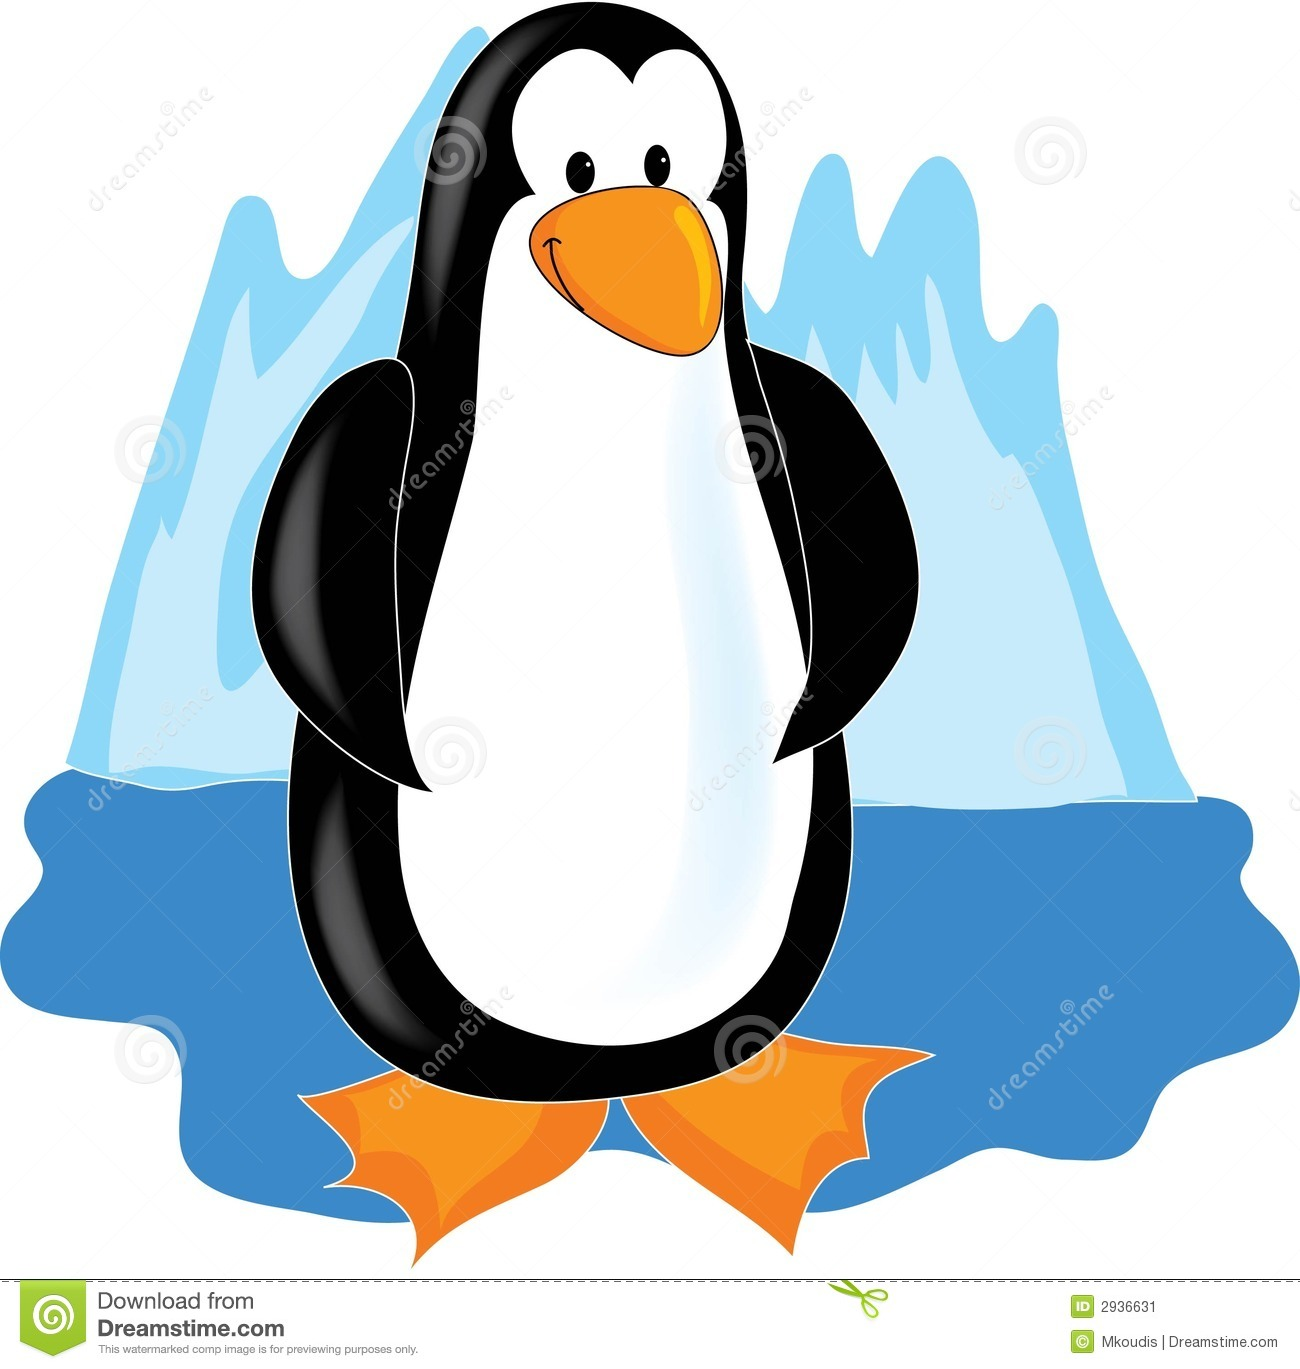 Clip Art Penguins in Antarctica